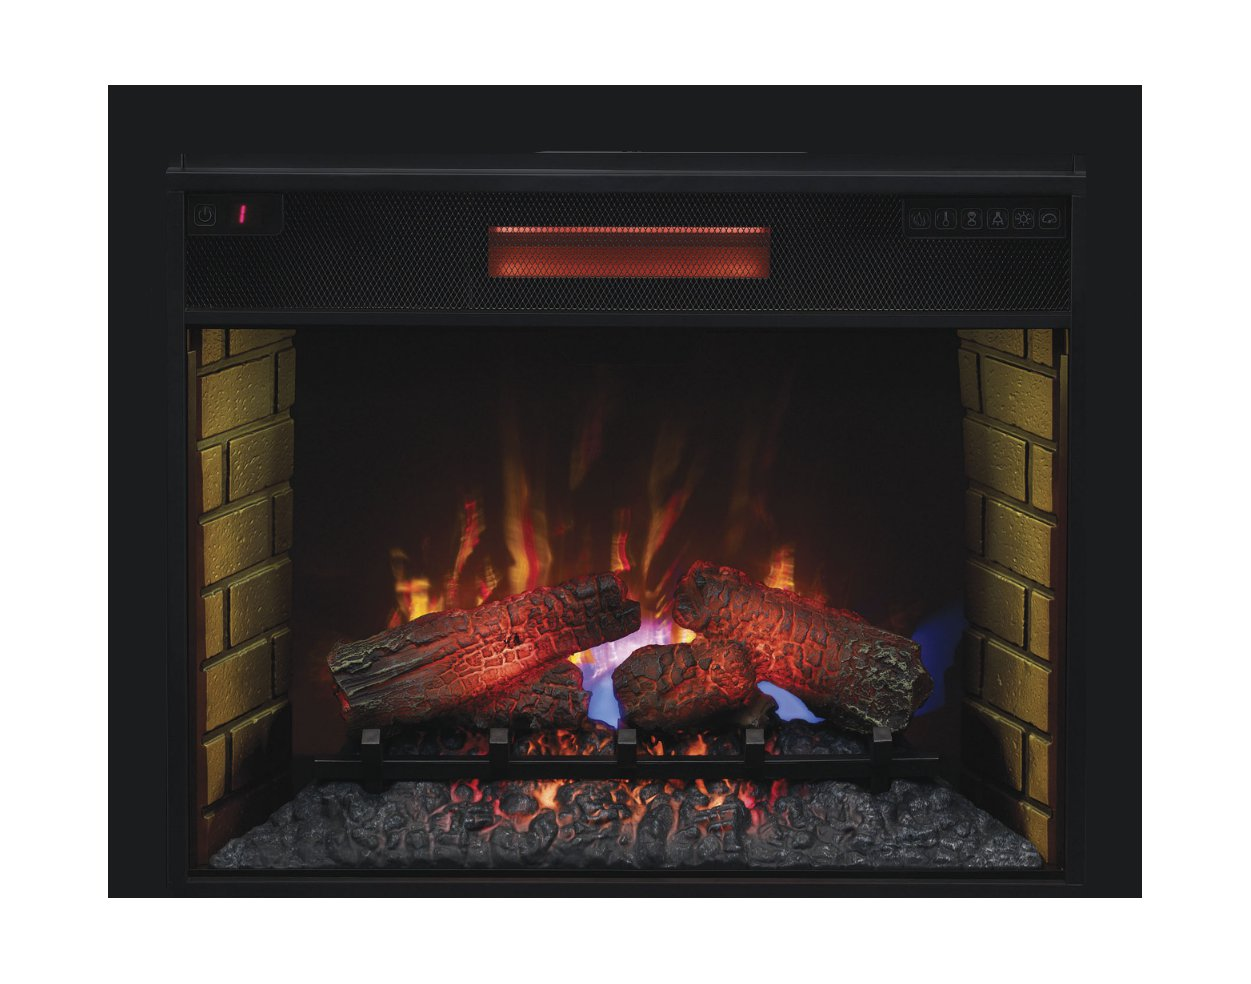 flush electric sale for on fireplaces inserts mount soraoto gas insert info small throughout fireplace